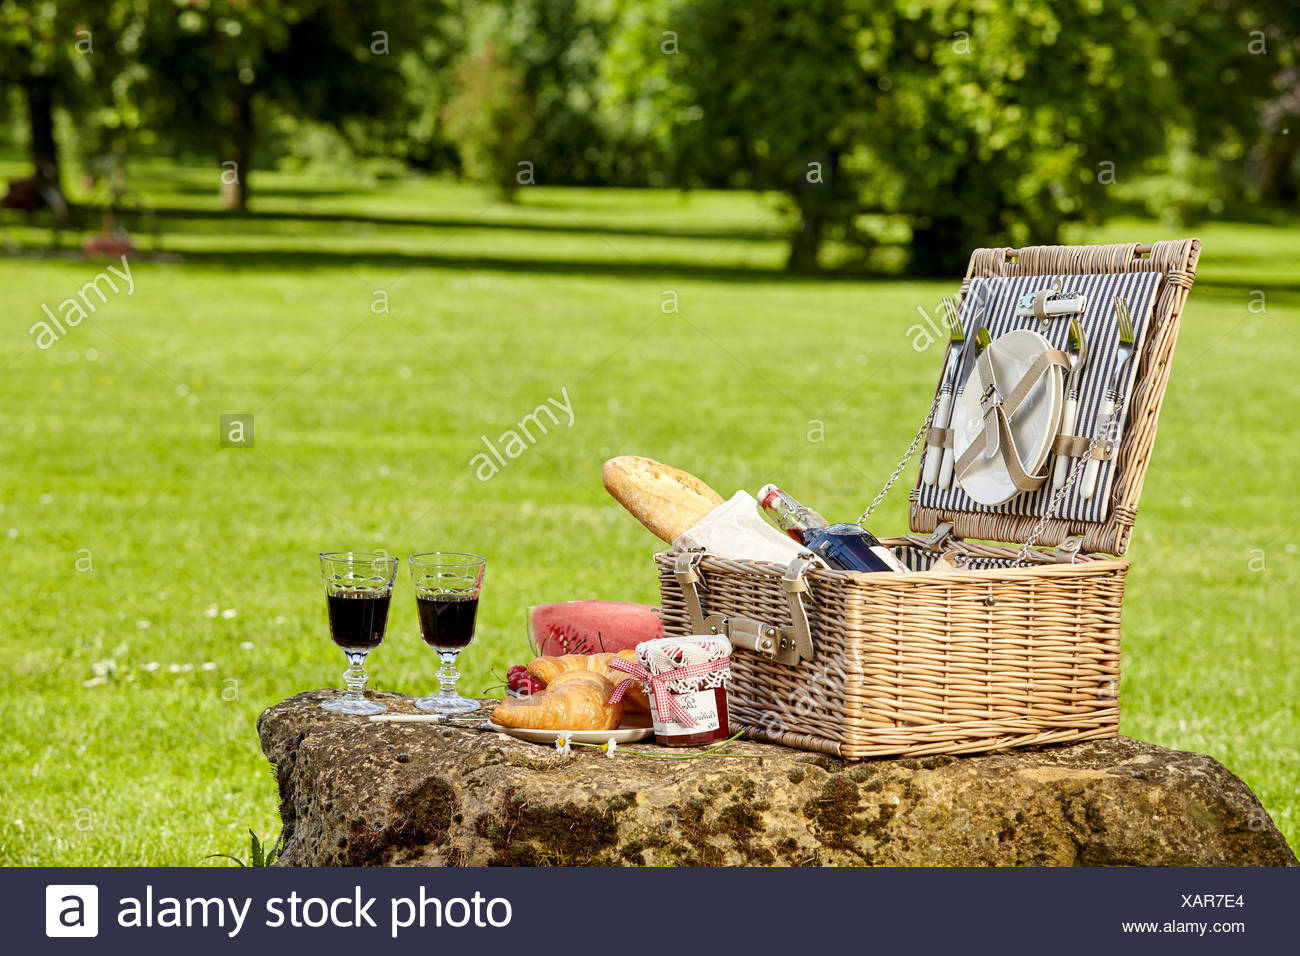 Fitted Stylish Wicker Picnic Hamper With Red Wine In Wineglasses Jam And Fresh Bread On A Rock In A Sunny Lush Green Park With Copy Space Stock Photo Alamy